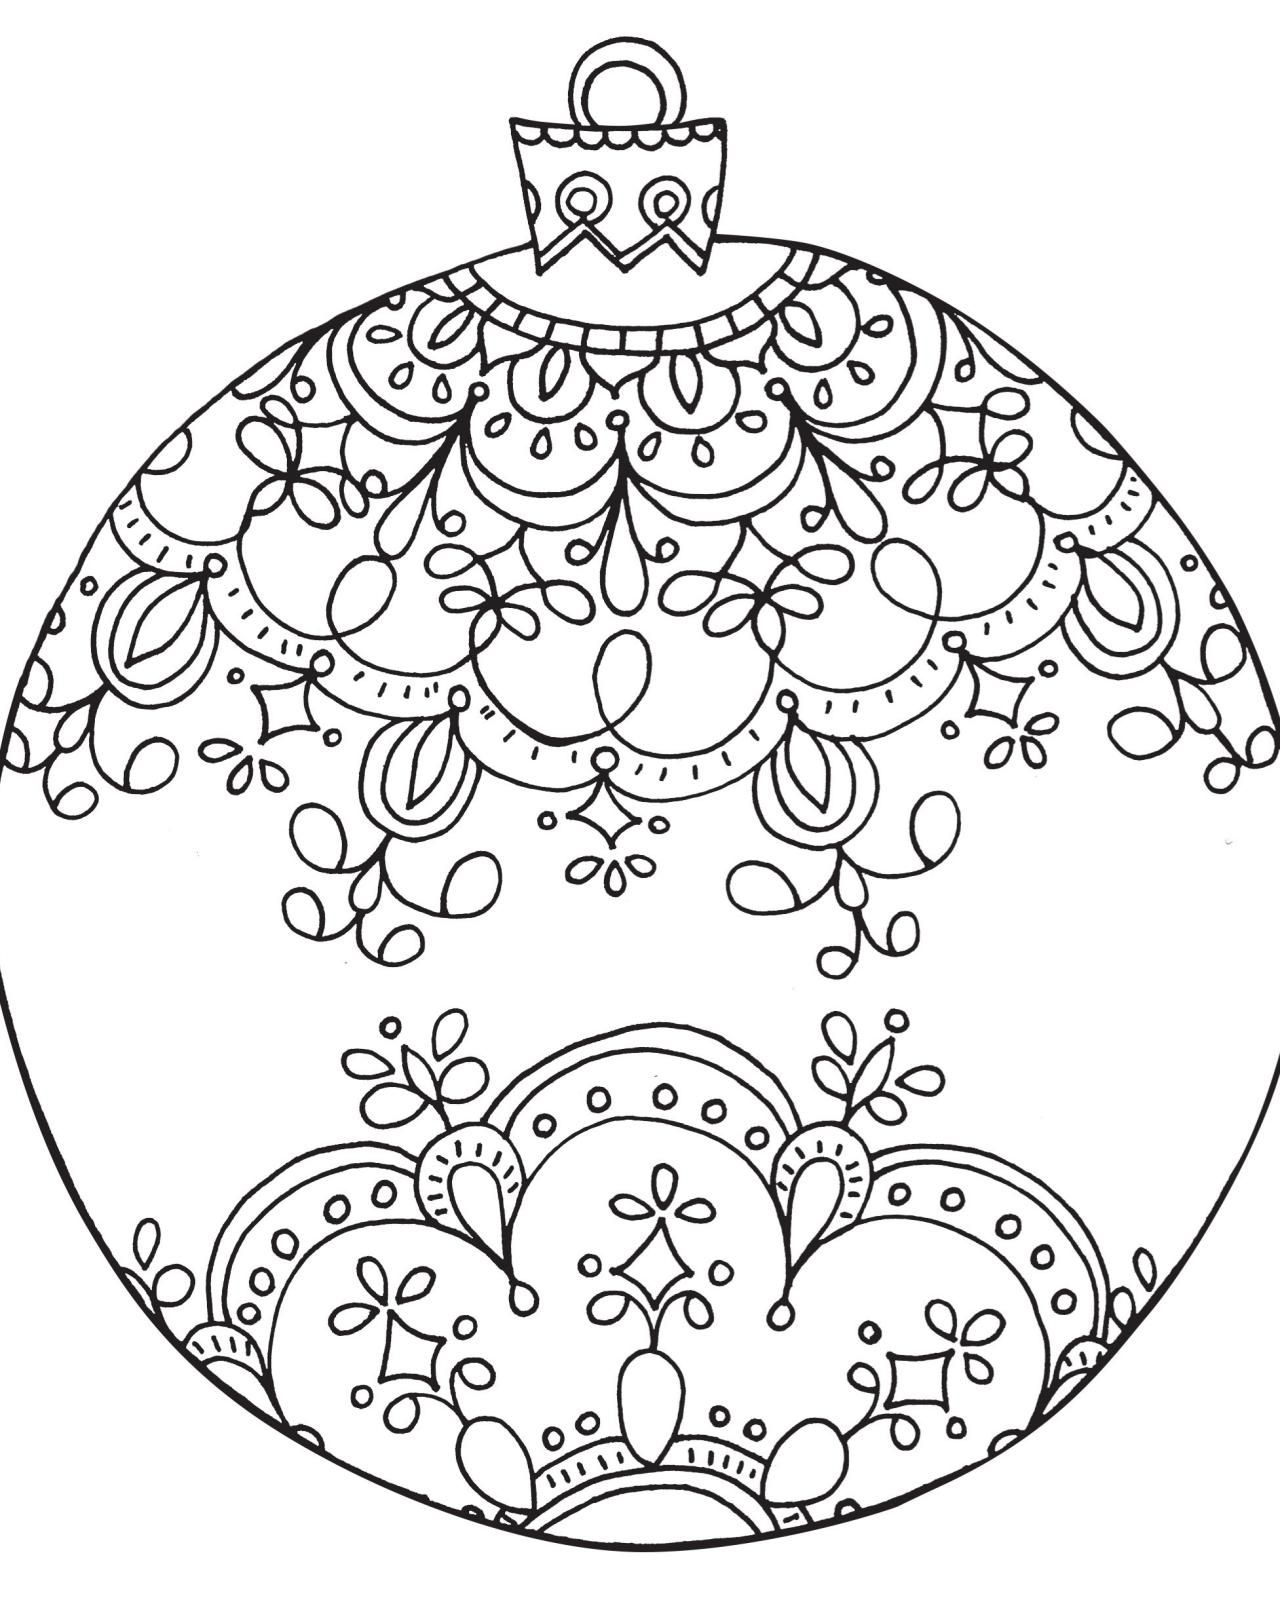 Christmas Coloring Pages Wreath With Merry Adult Printable Best Of